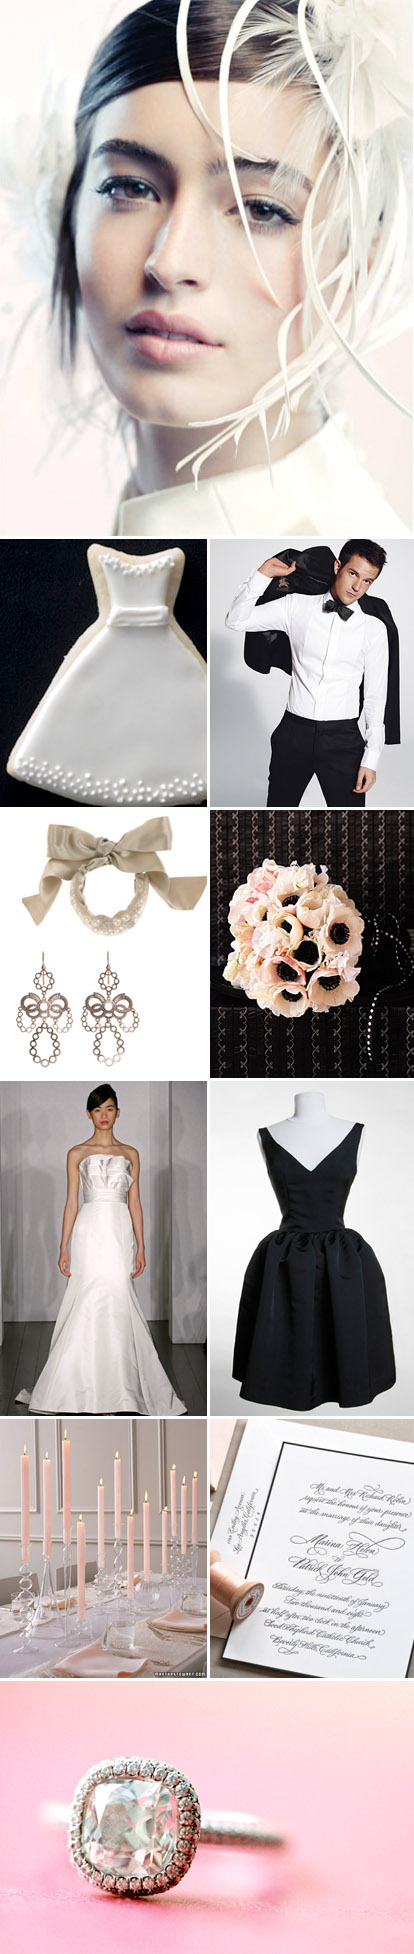 black, white and blush wedding color palette and inspiration board